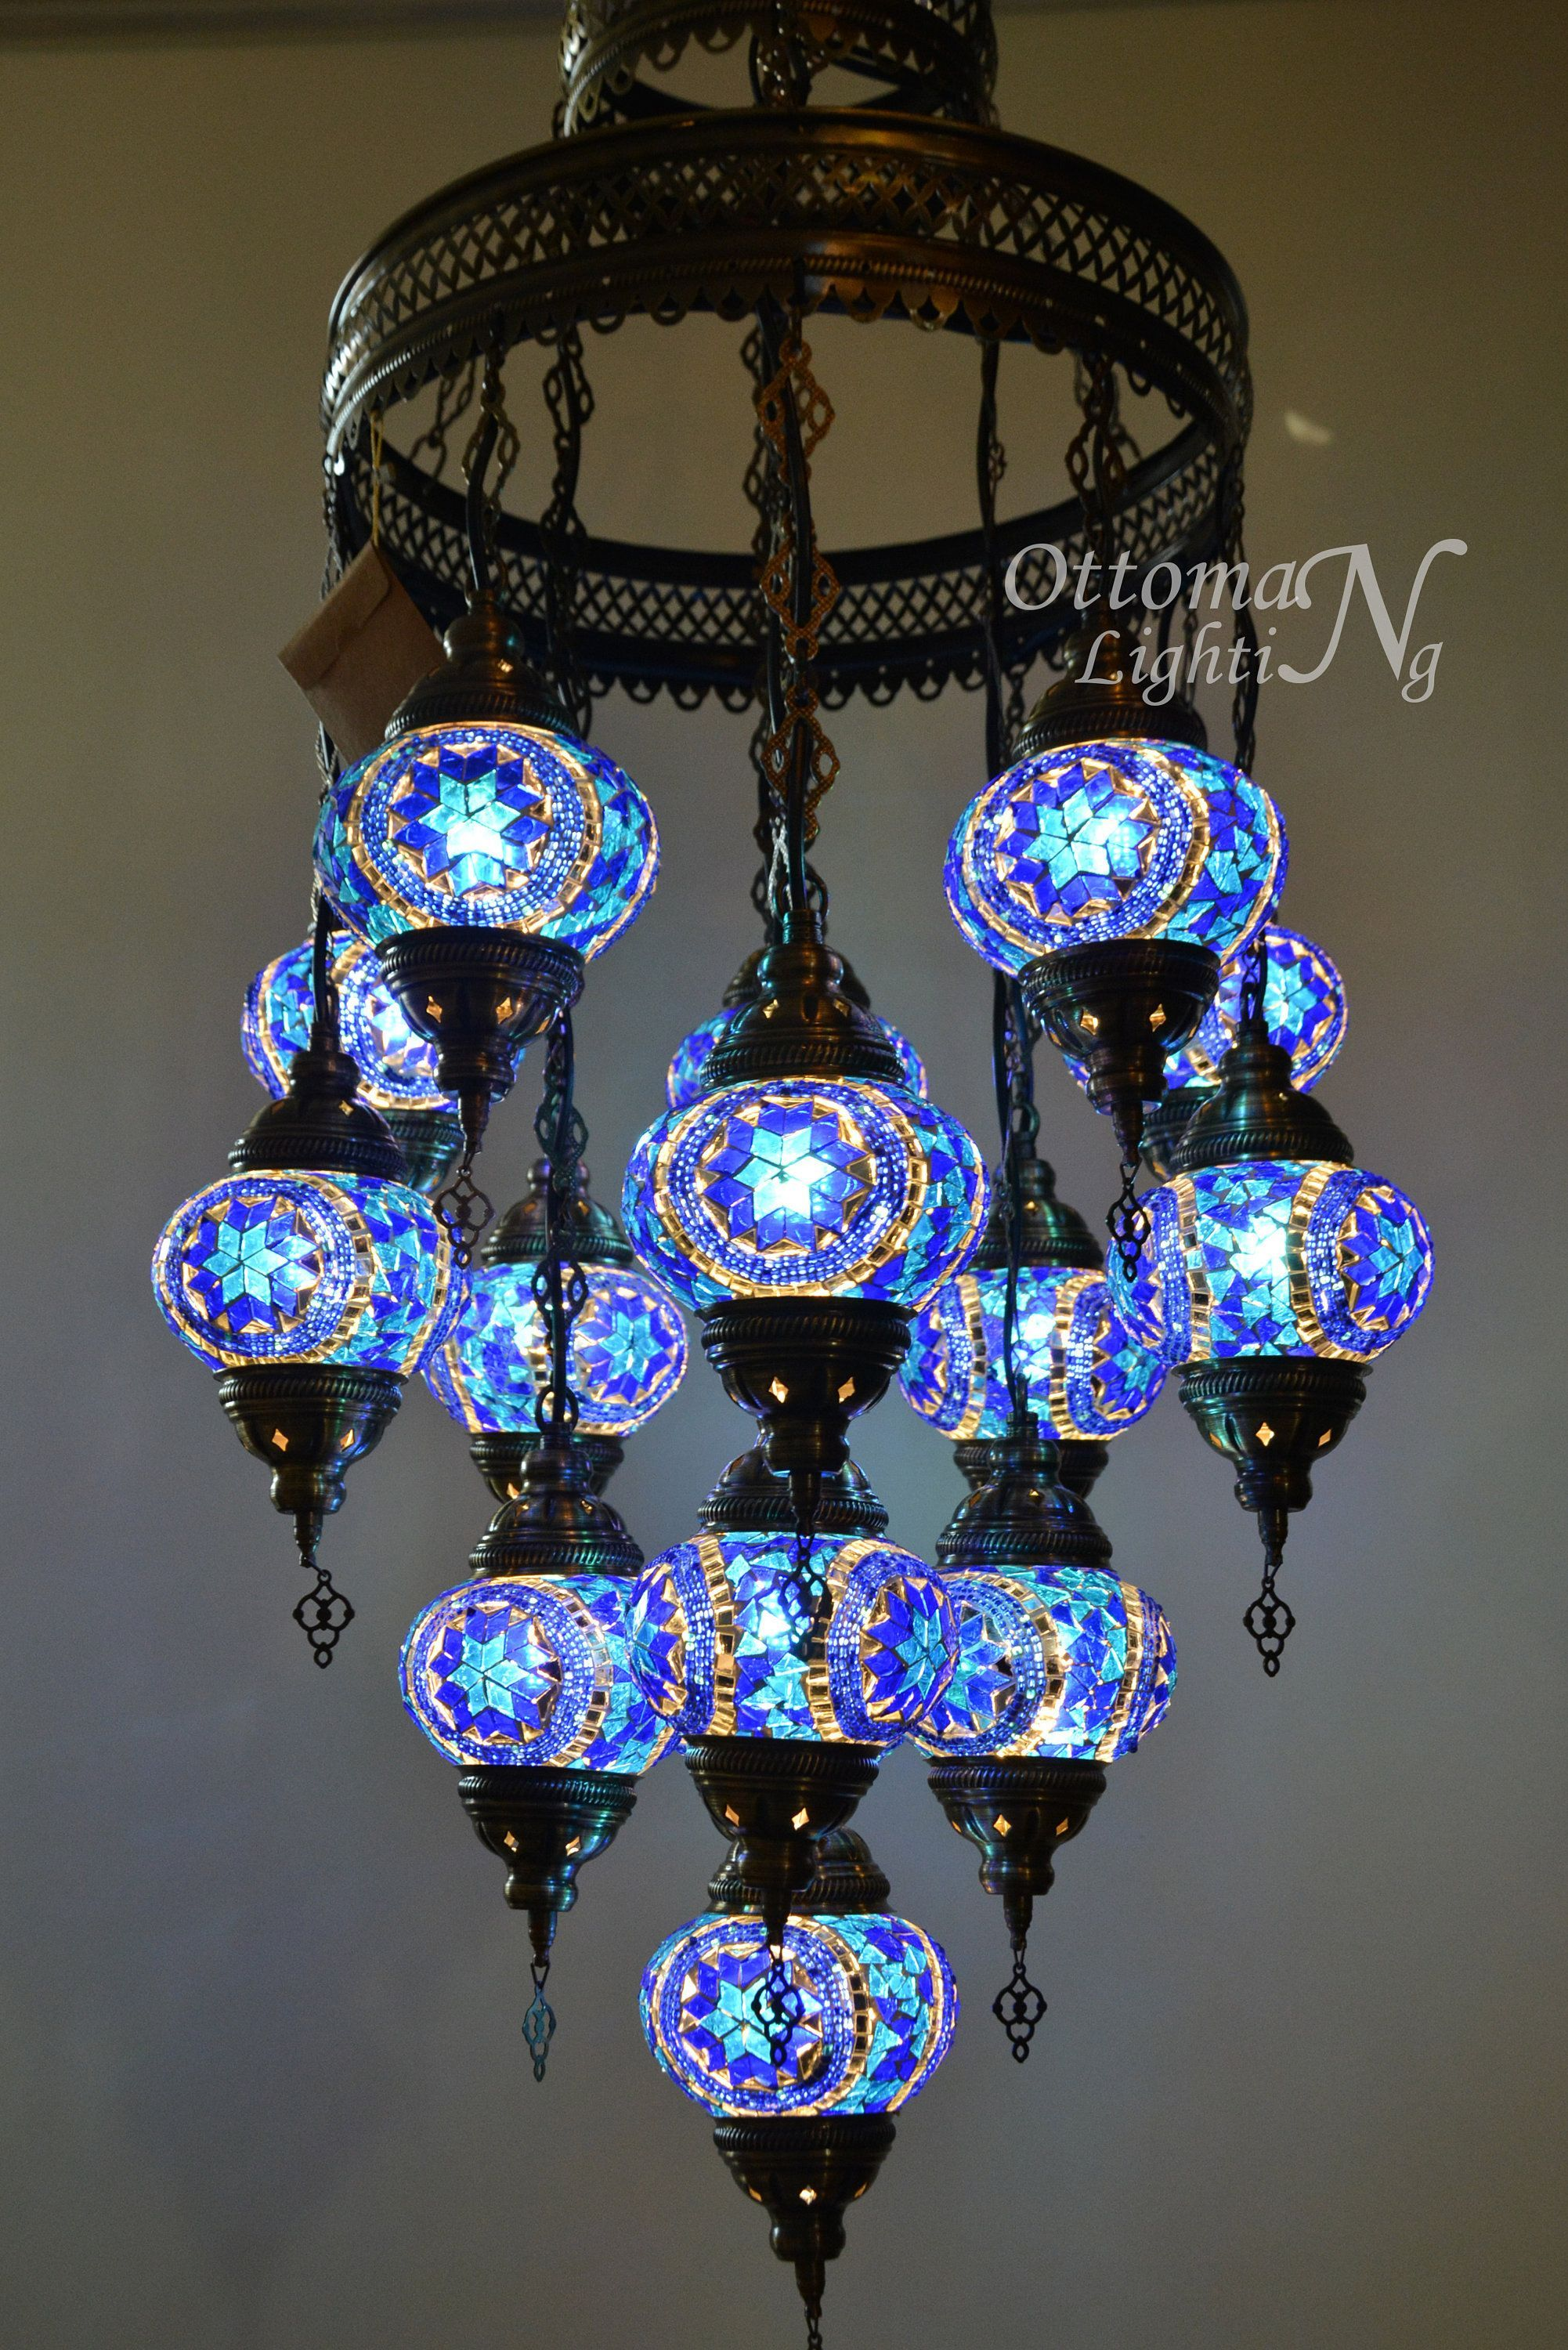 Handmade Turkish 15 Globe Stunning Chandelier Morrocan Decor Etsy Uniquelamps Morrocan Decor Turkish Lamps Mosaic Lamp